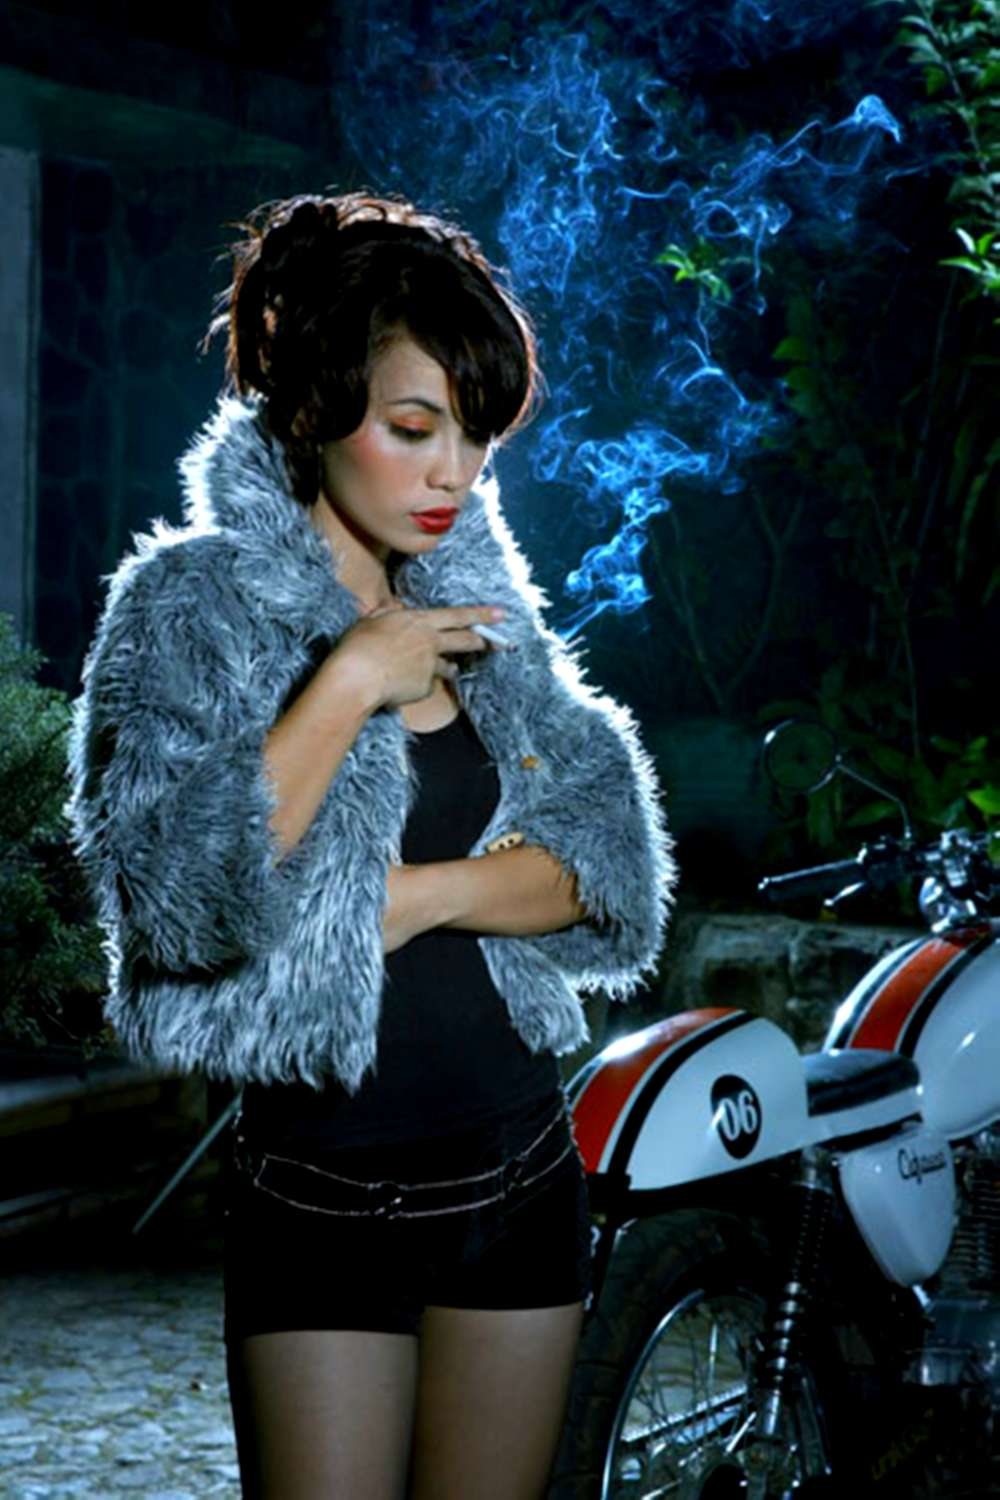 Bmw S1000rr Girl Wallpaper Girls On Motorcycles Return Of The Cafe Racers